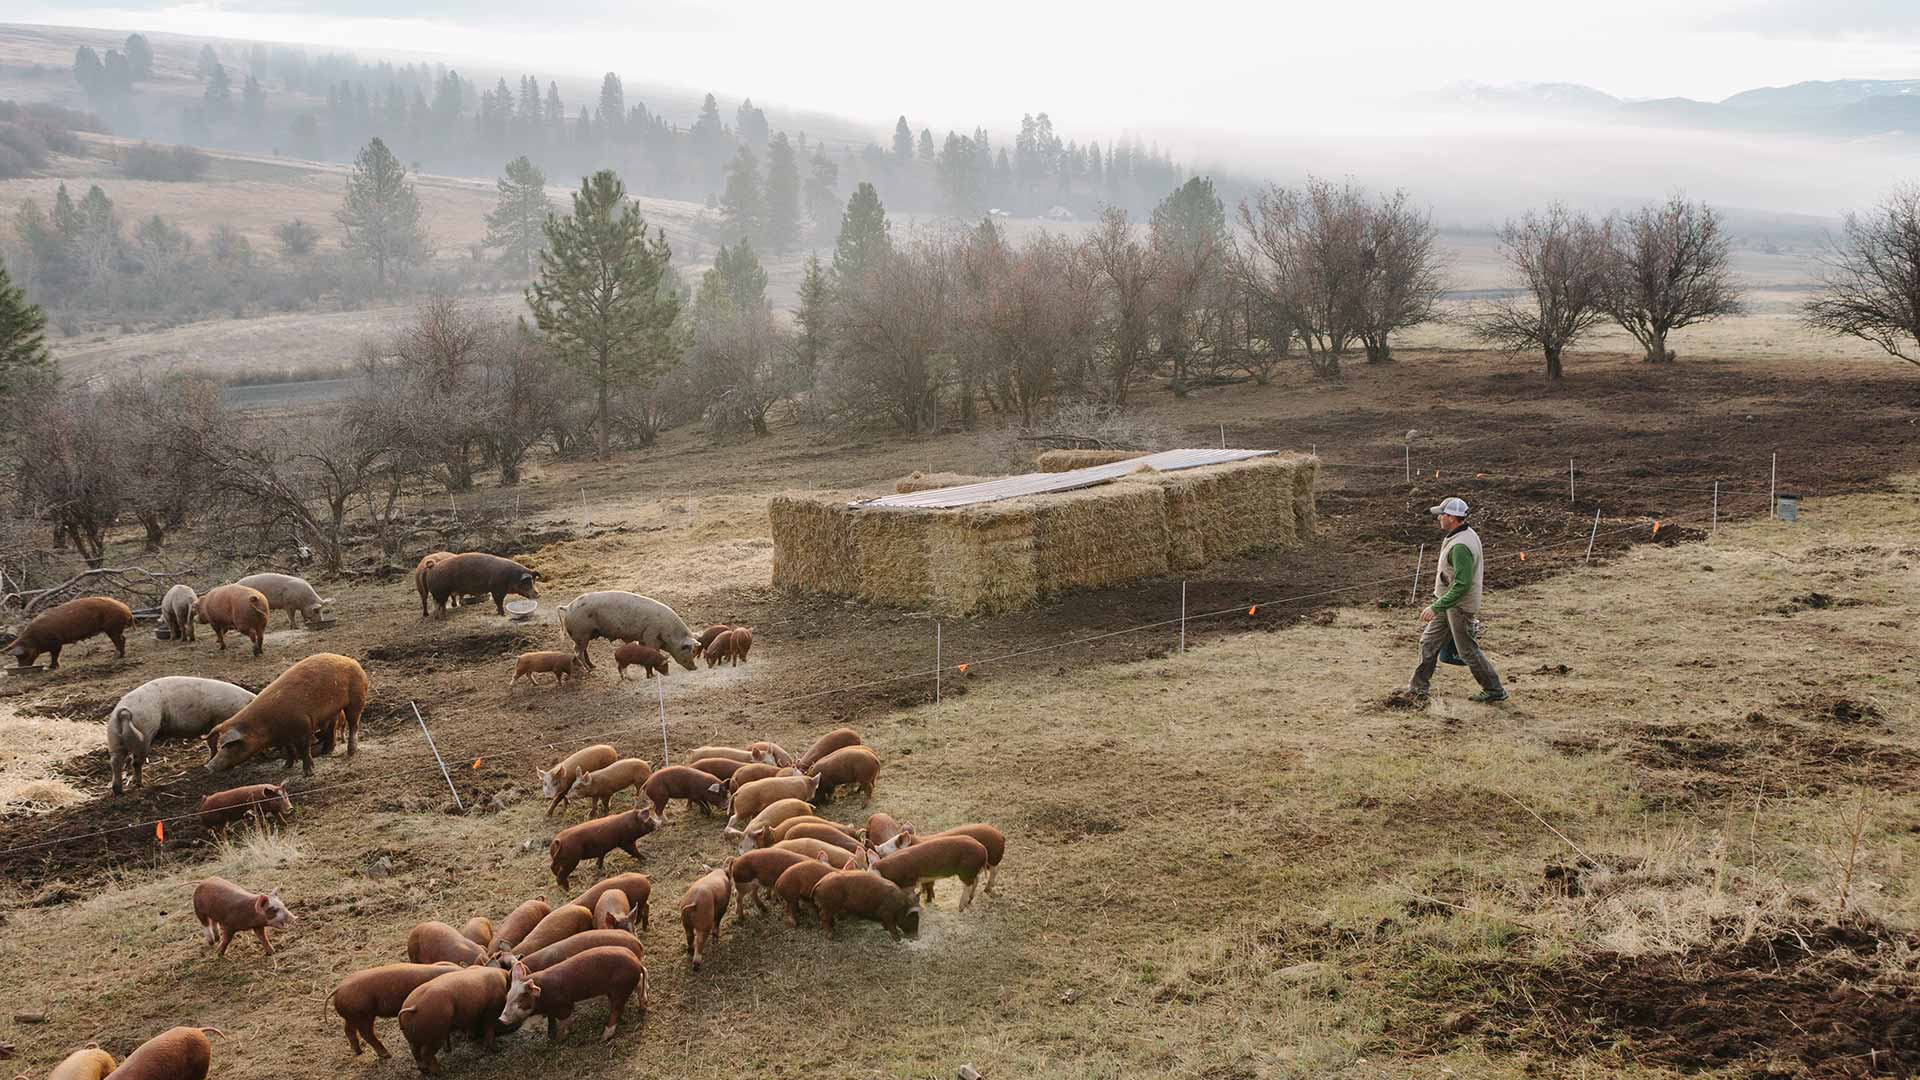 man walks out toward large and small pigs that are eating